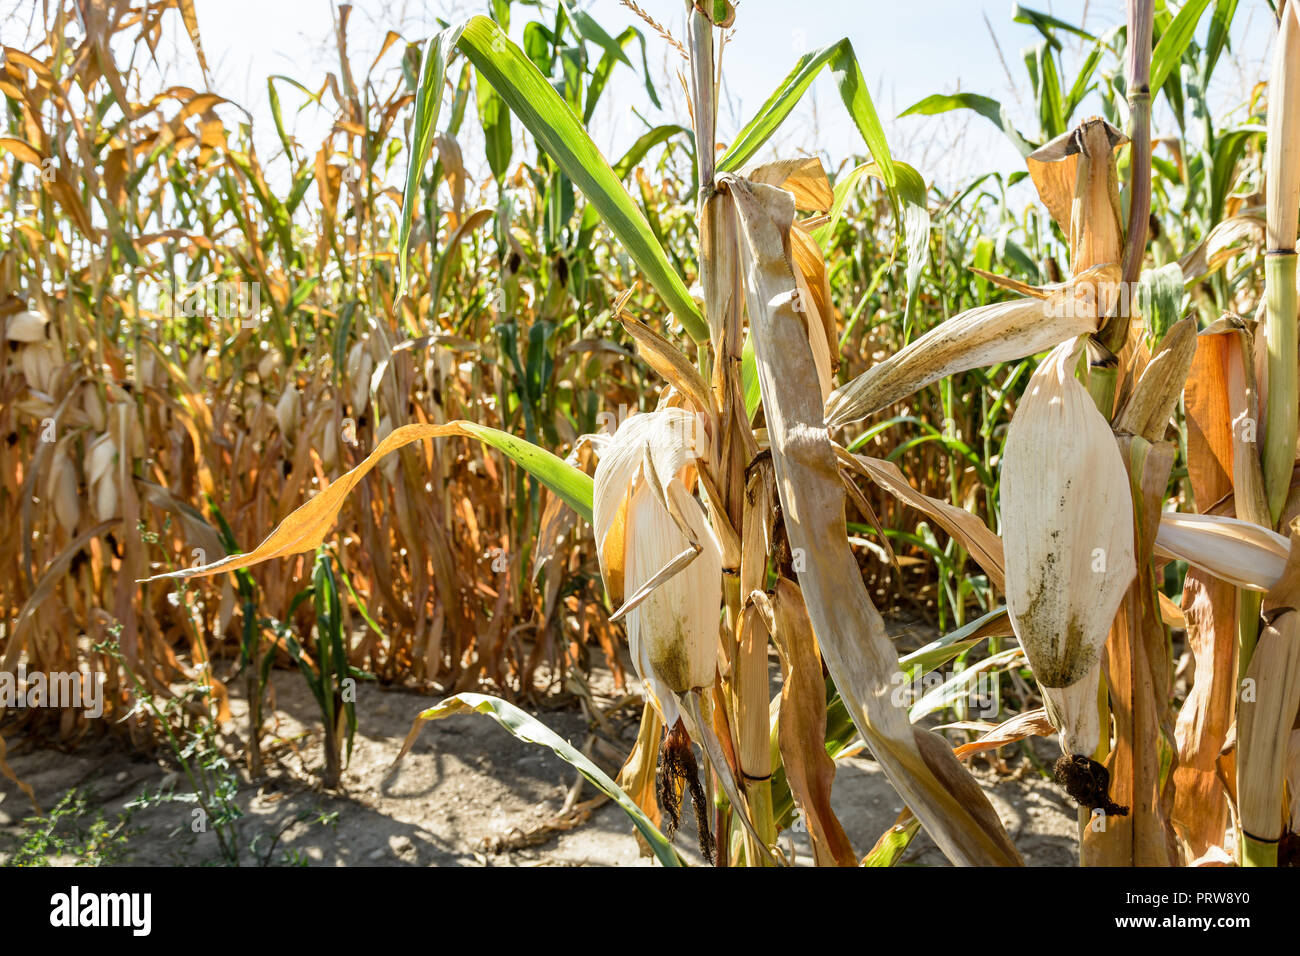 Drought hits corn crop. Close-up view of dry ears of corn in a field affected by drought during a hot, dry summer in the french countryside. - Stock Image